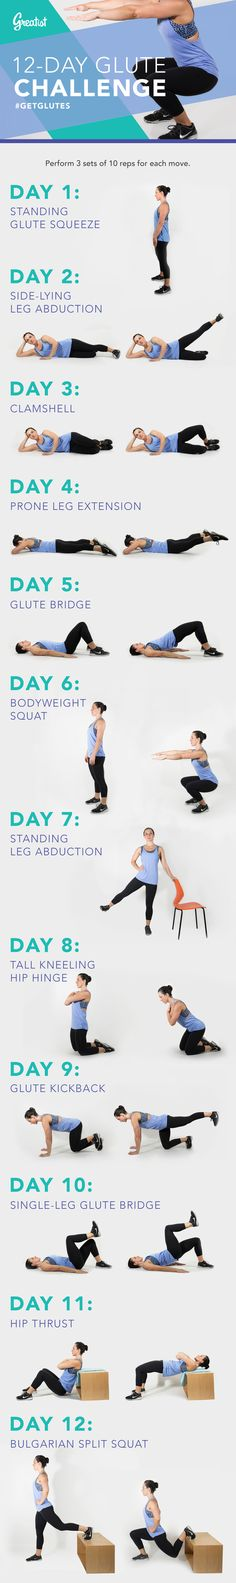 Join Greatist's 12-Day Glute Challenge